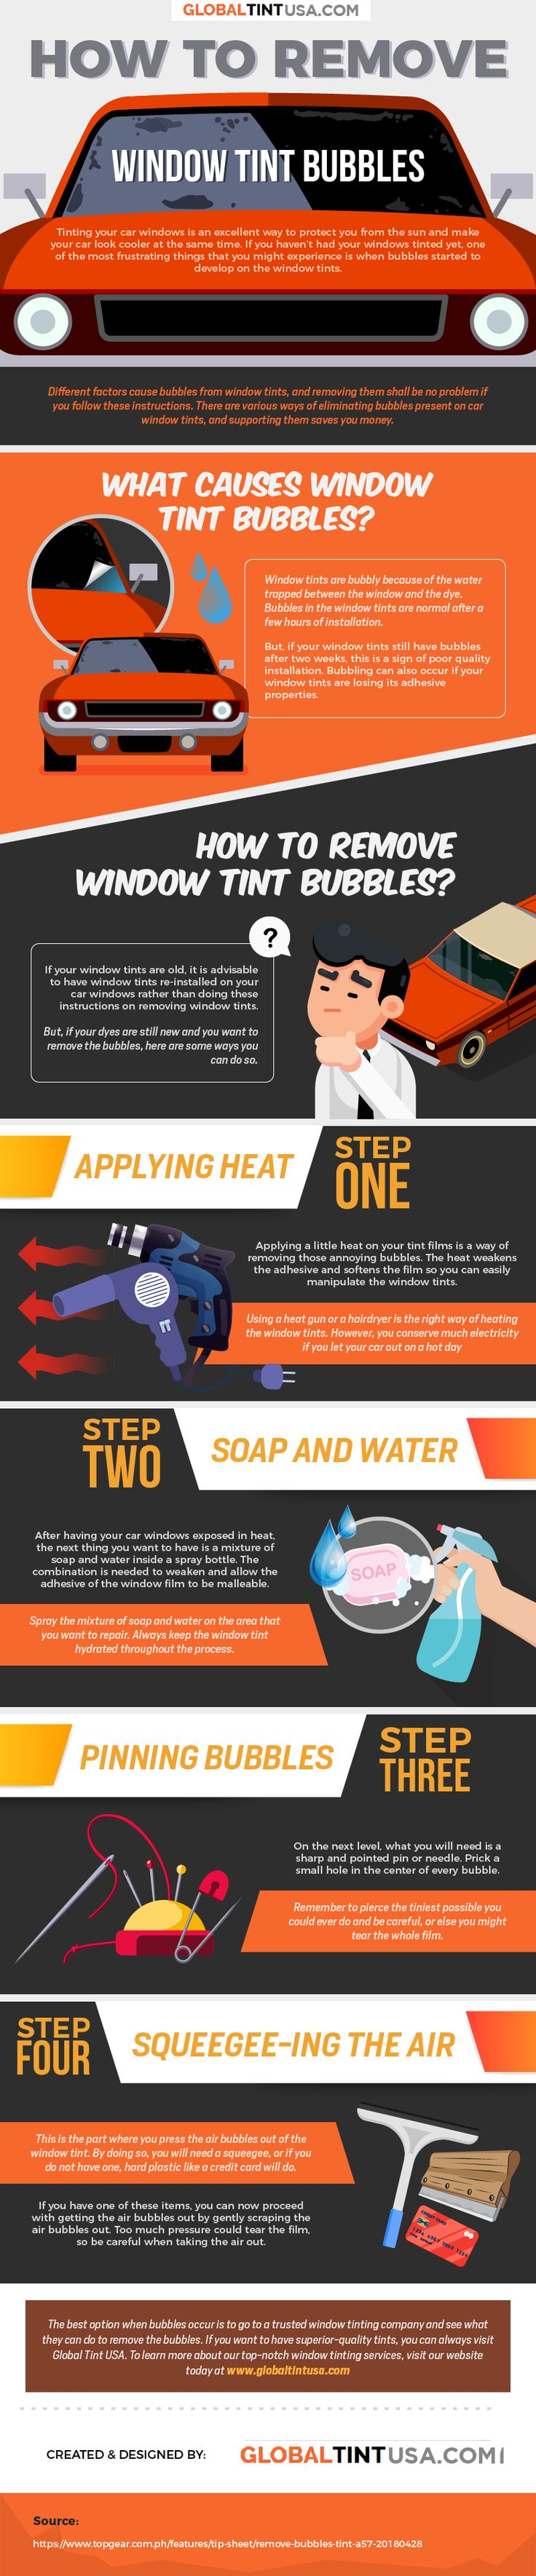 How to remove window tint bubbles infographic tinted